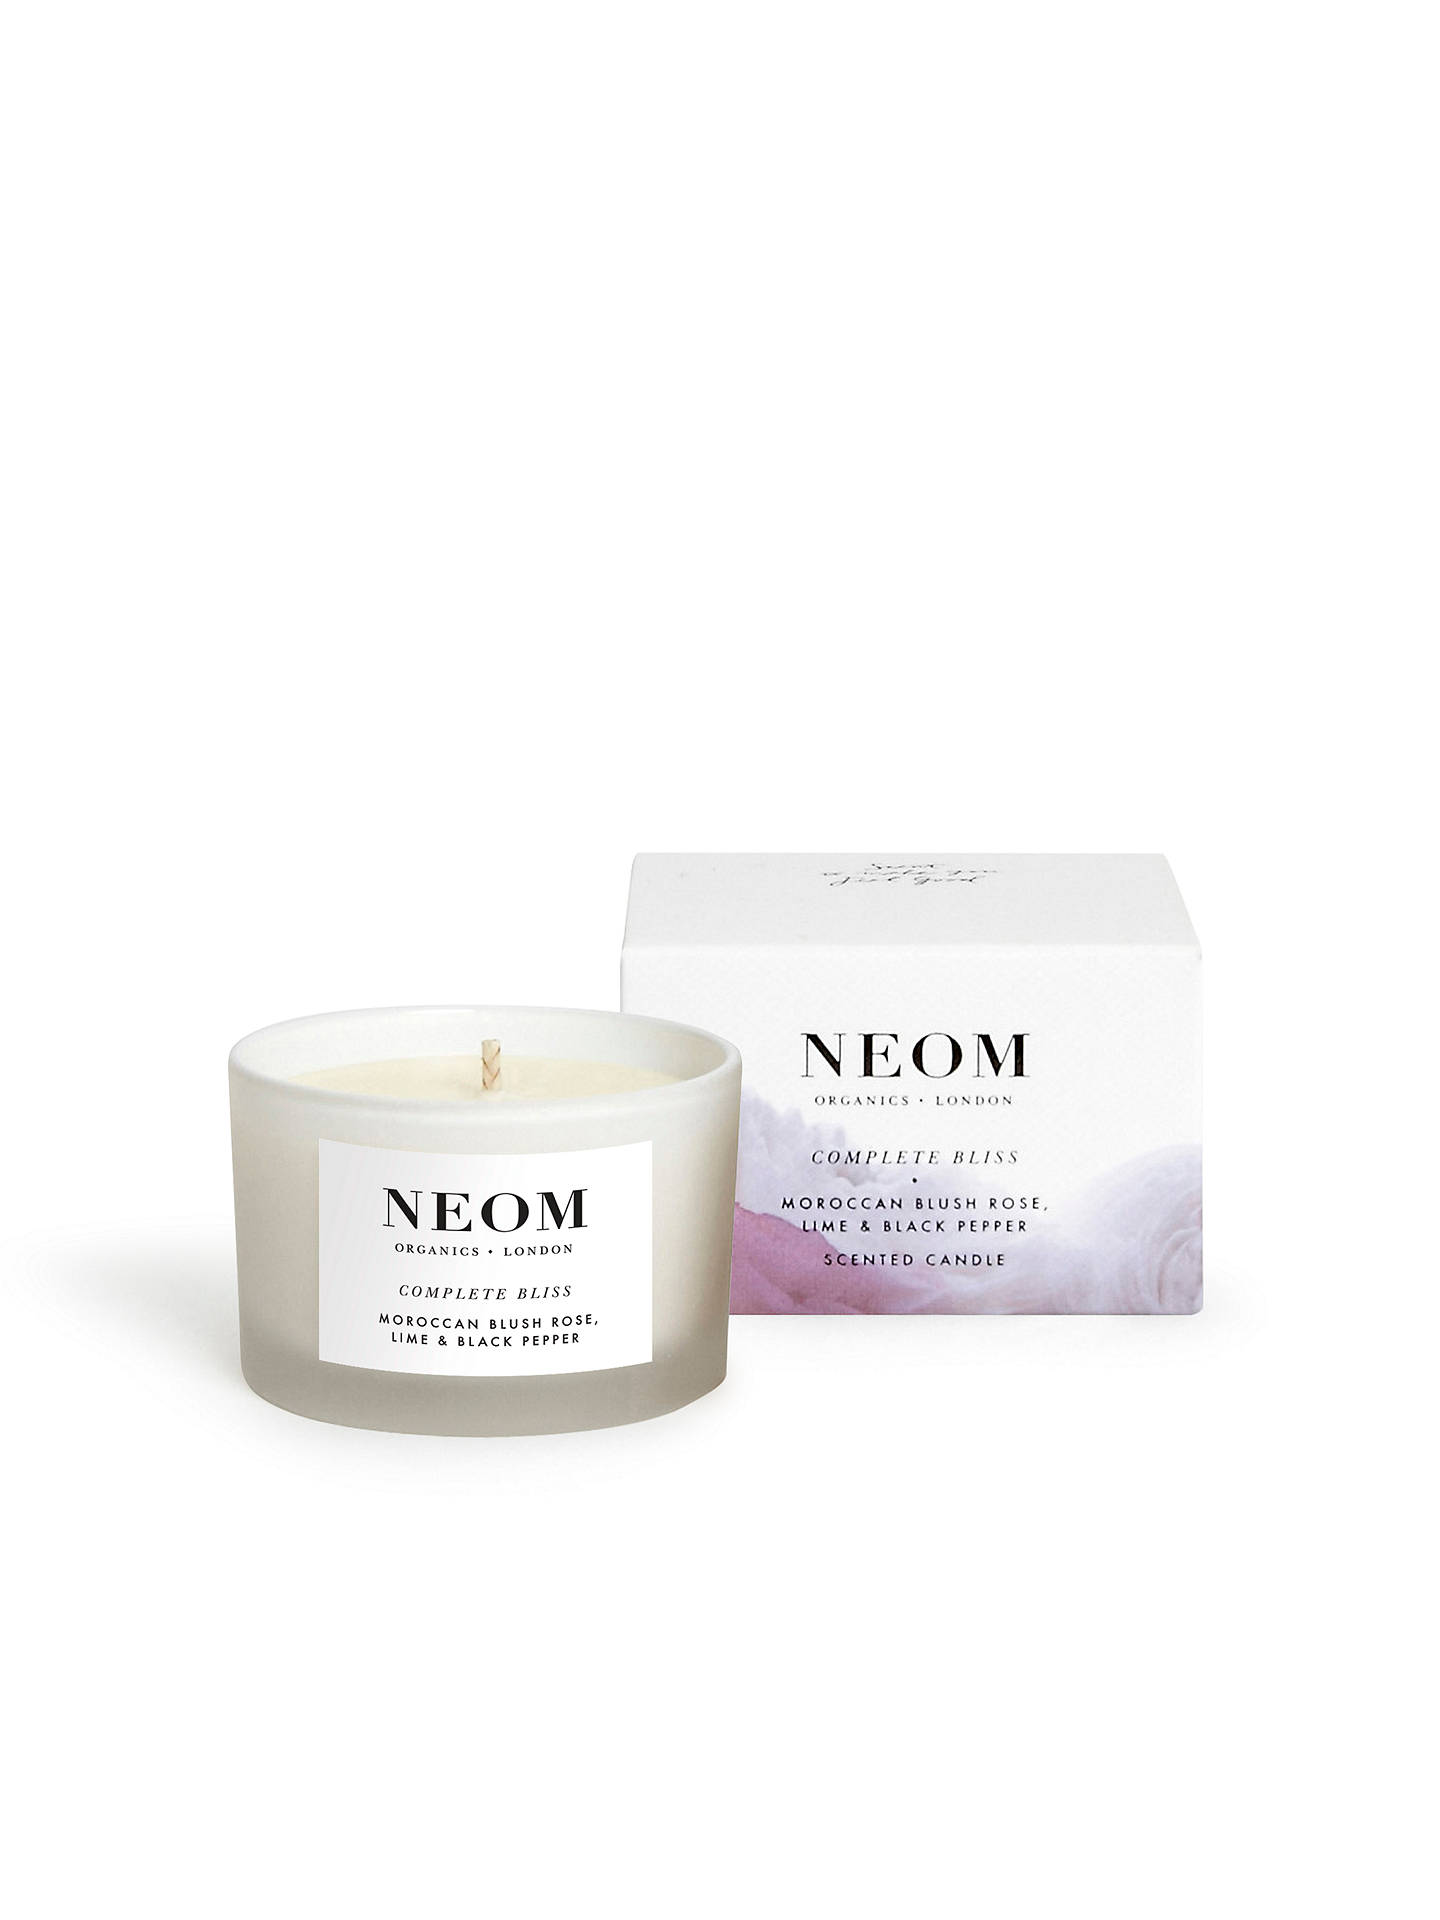 Buy Neom Complete Bliss Travel Candle, 75g Online at johnlewis.com